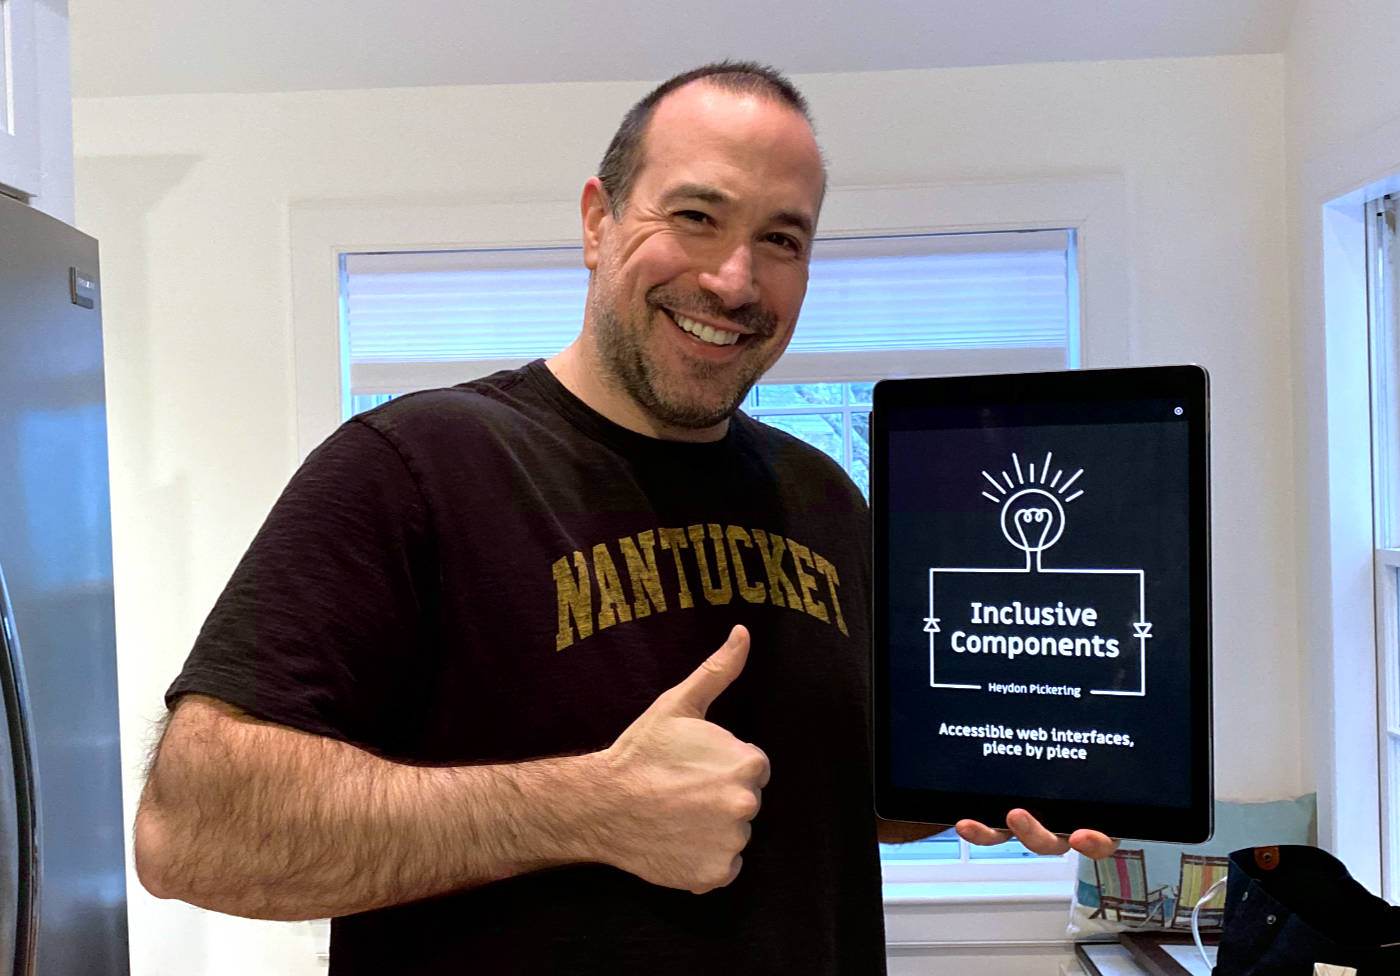 Ben Nadel giving his thumbs-up for Inclusive Components: Accessible Web Interfaces, Piece By Piece by Heydon Pickering.